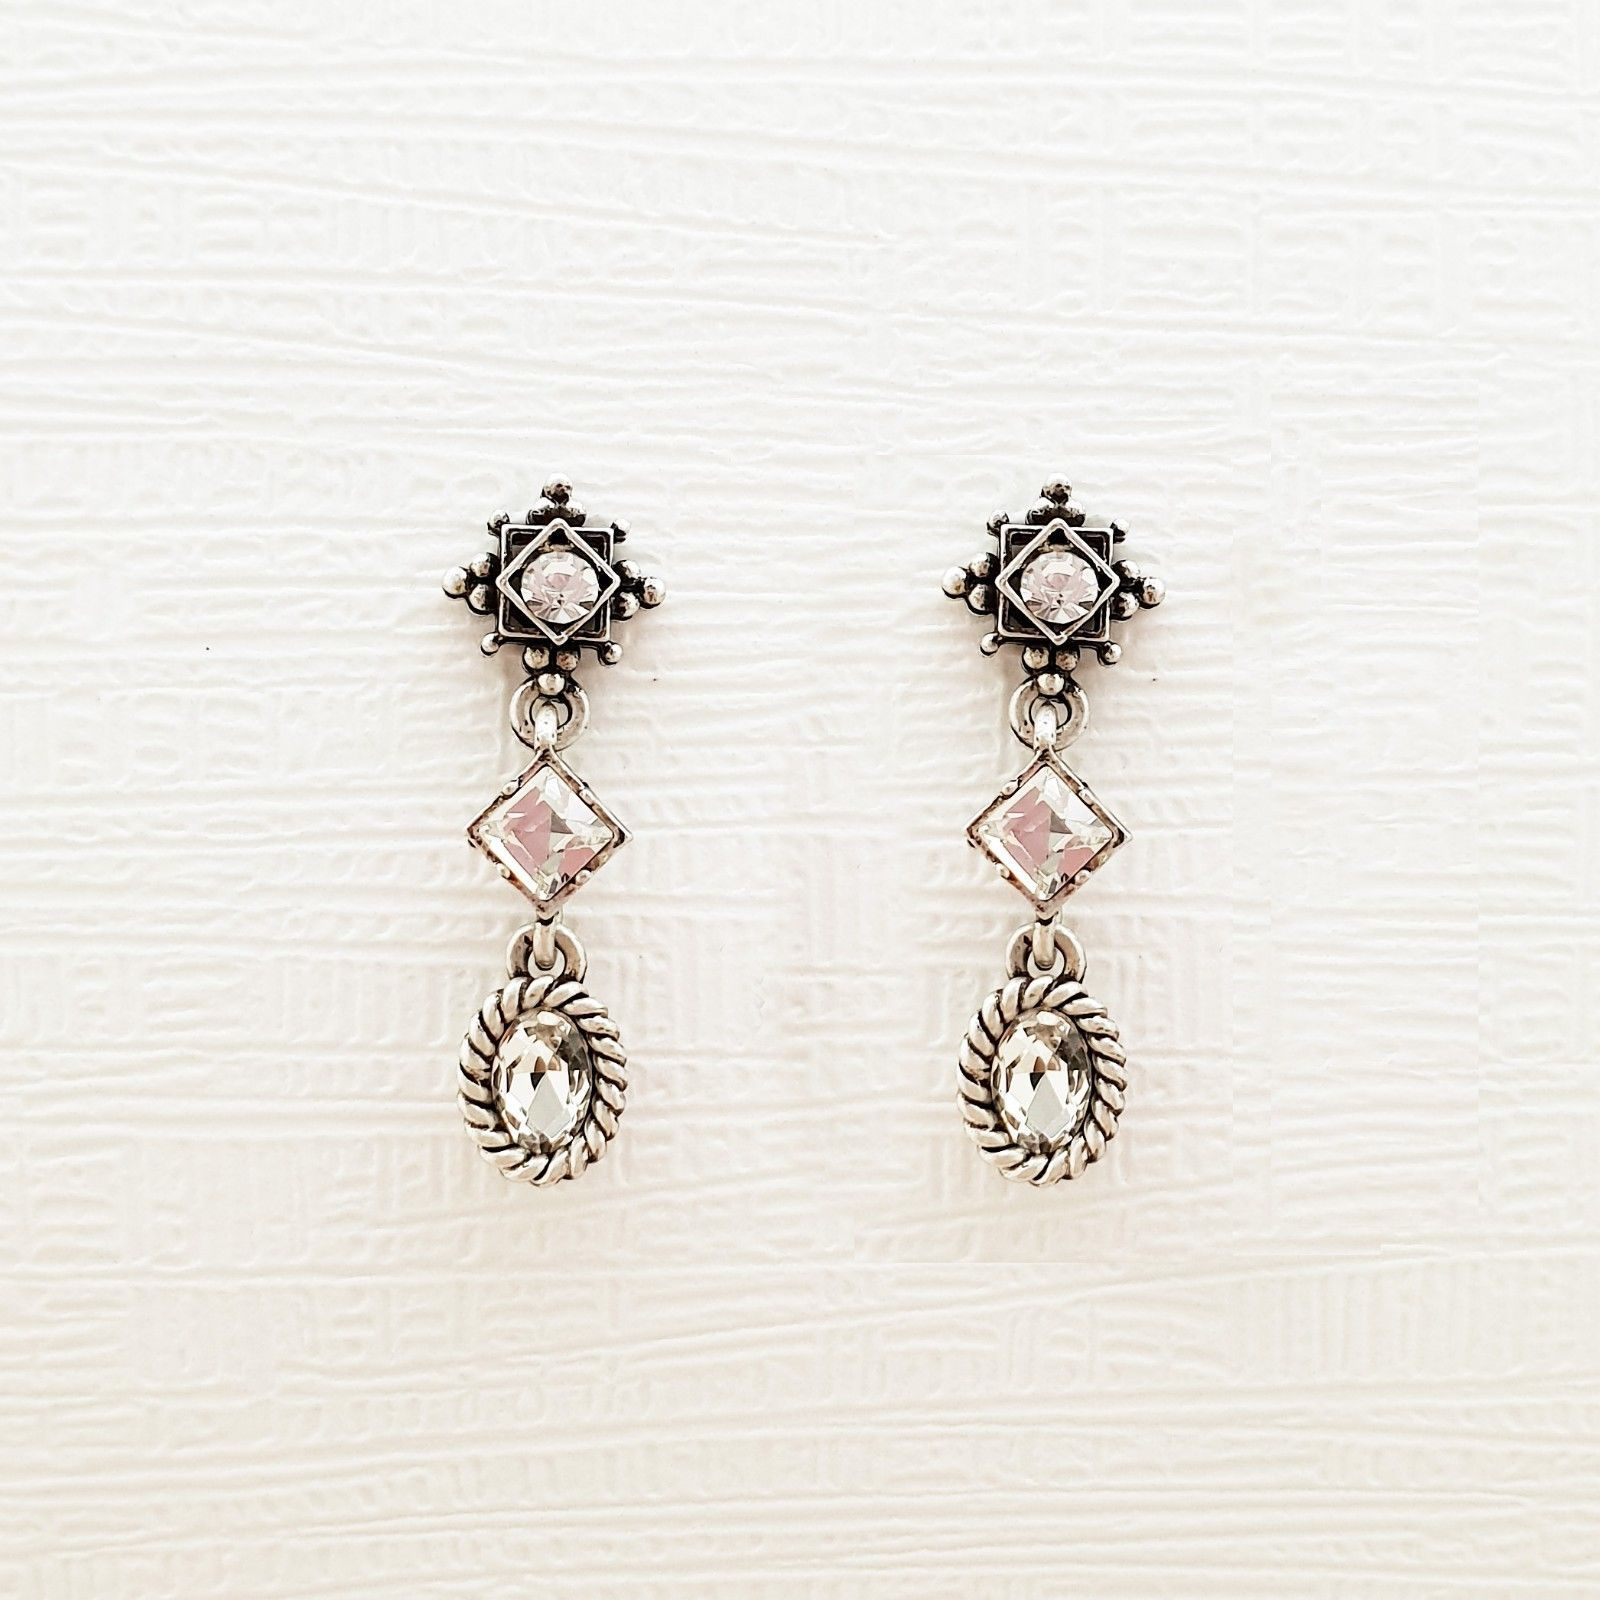 3 Tiered Oval Rhombus Dangle Earrings Made With Swarovski Stone 925 Silver Ear image 3